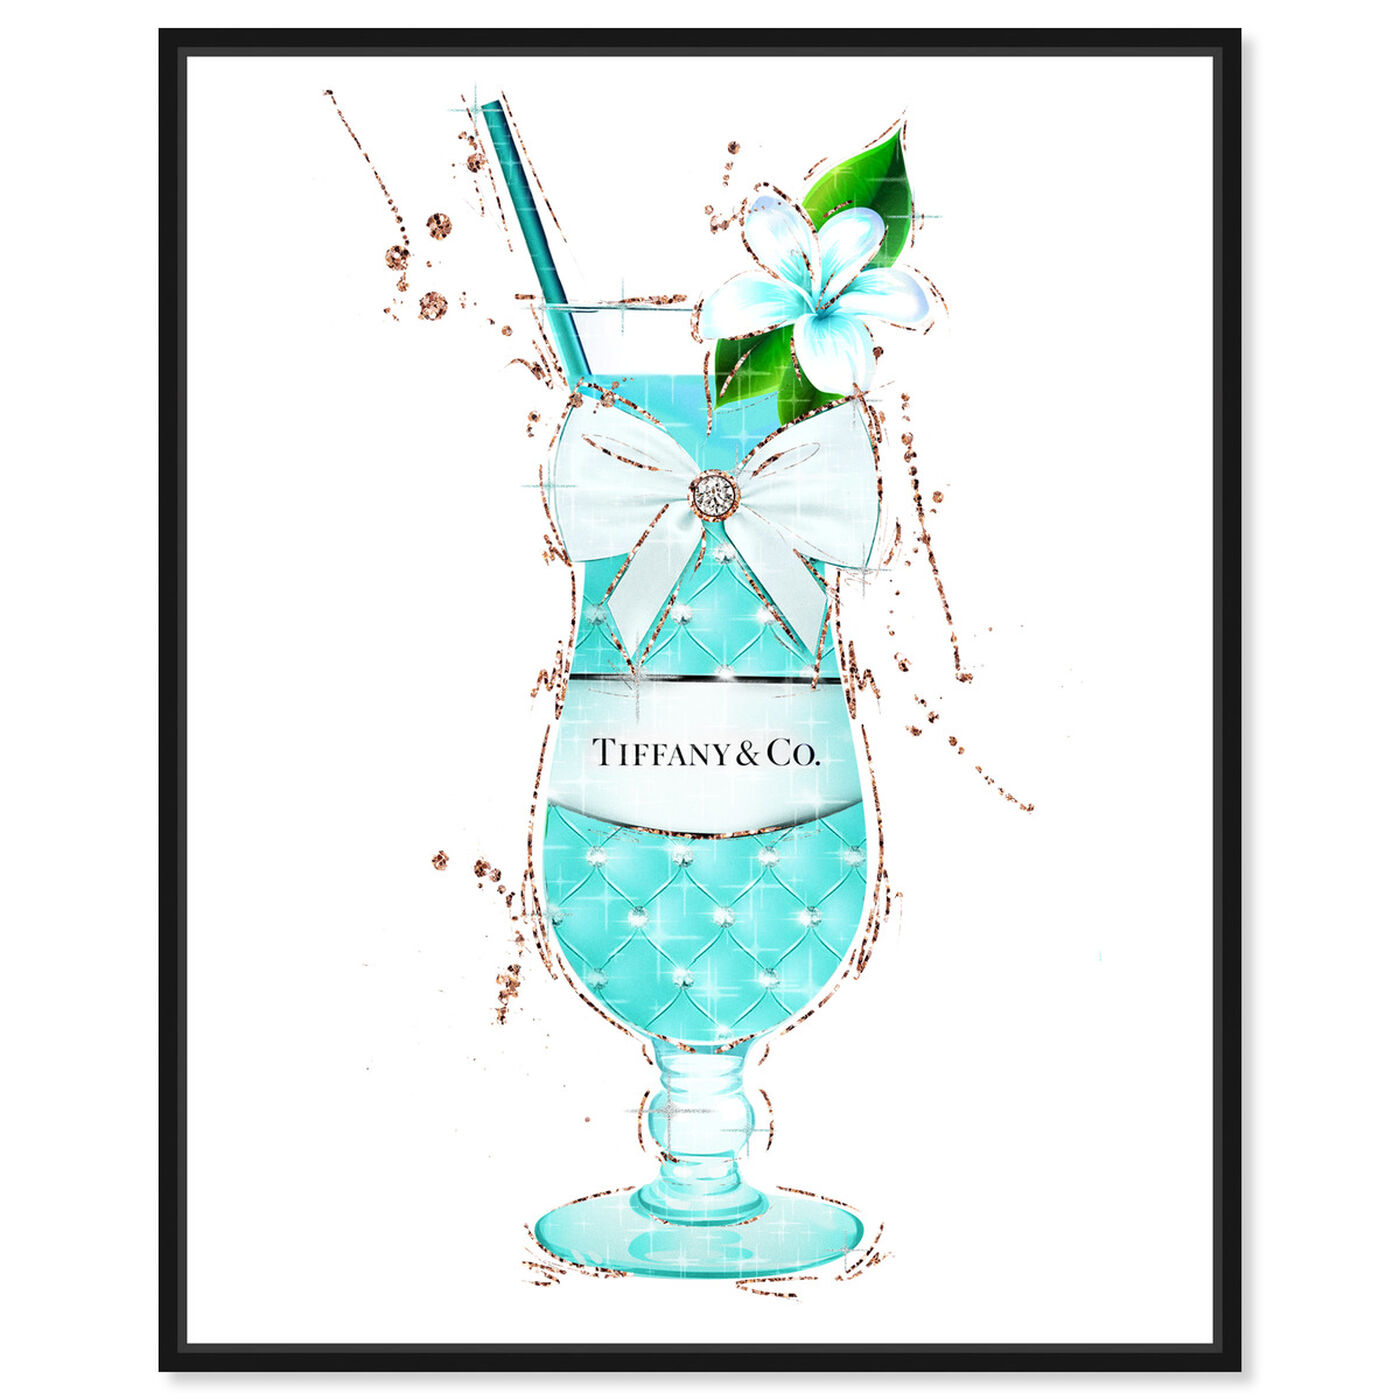 Front view of A Toast for Breakfast featuring drinks and spirits and cocktails art.